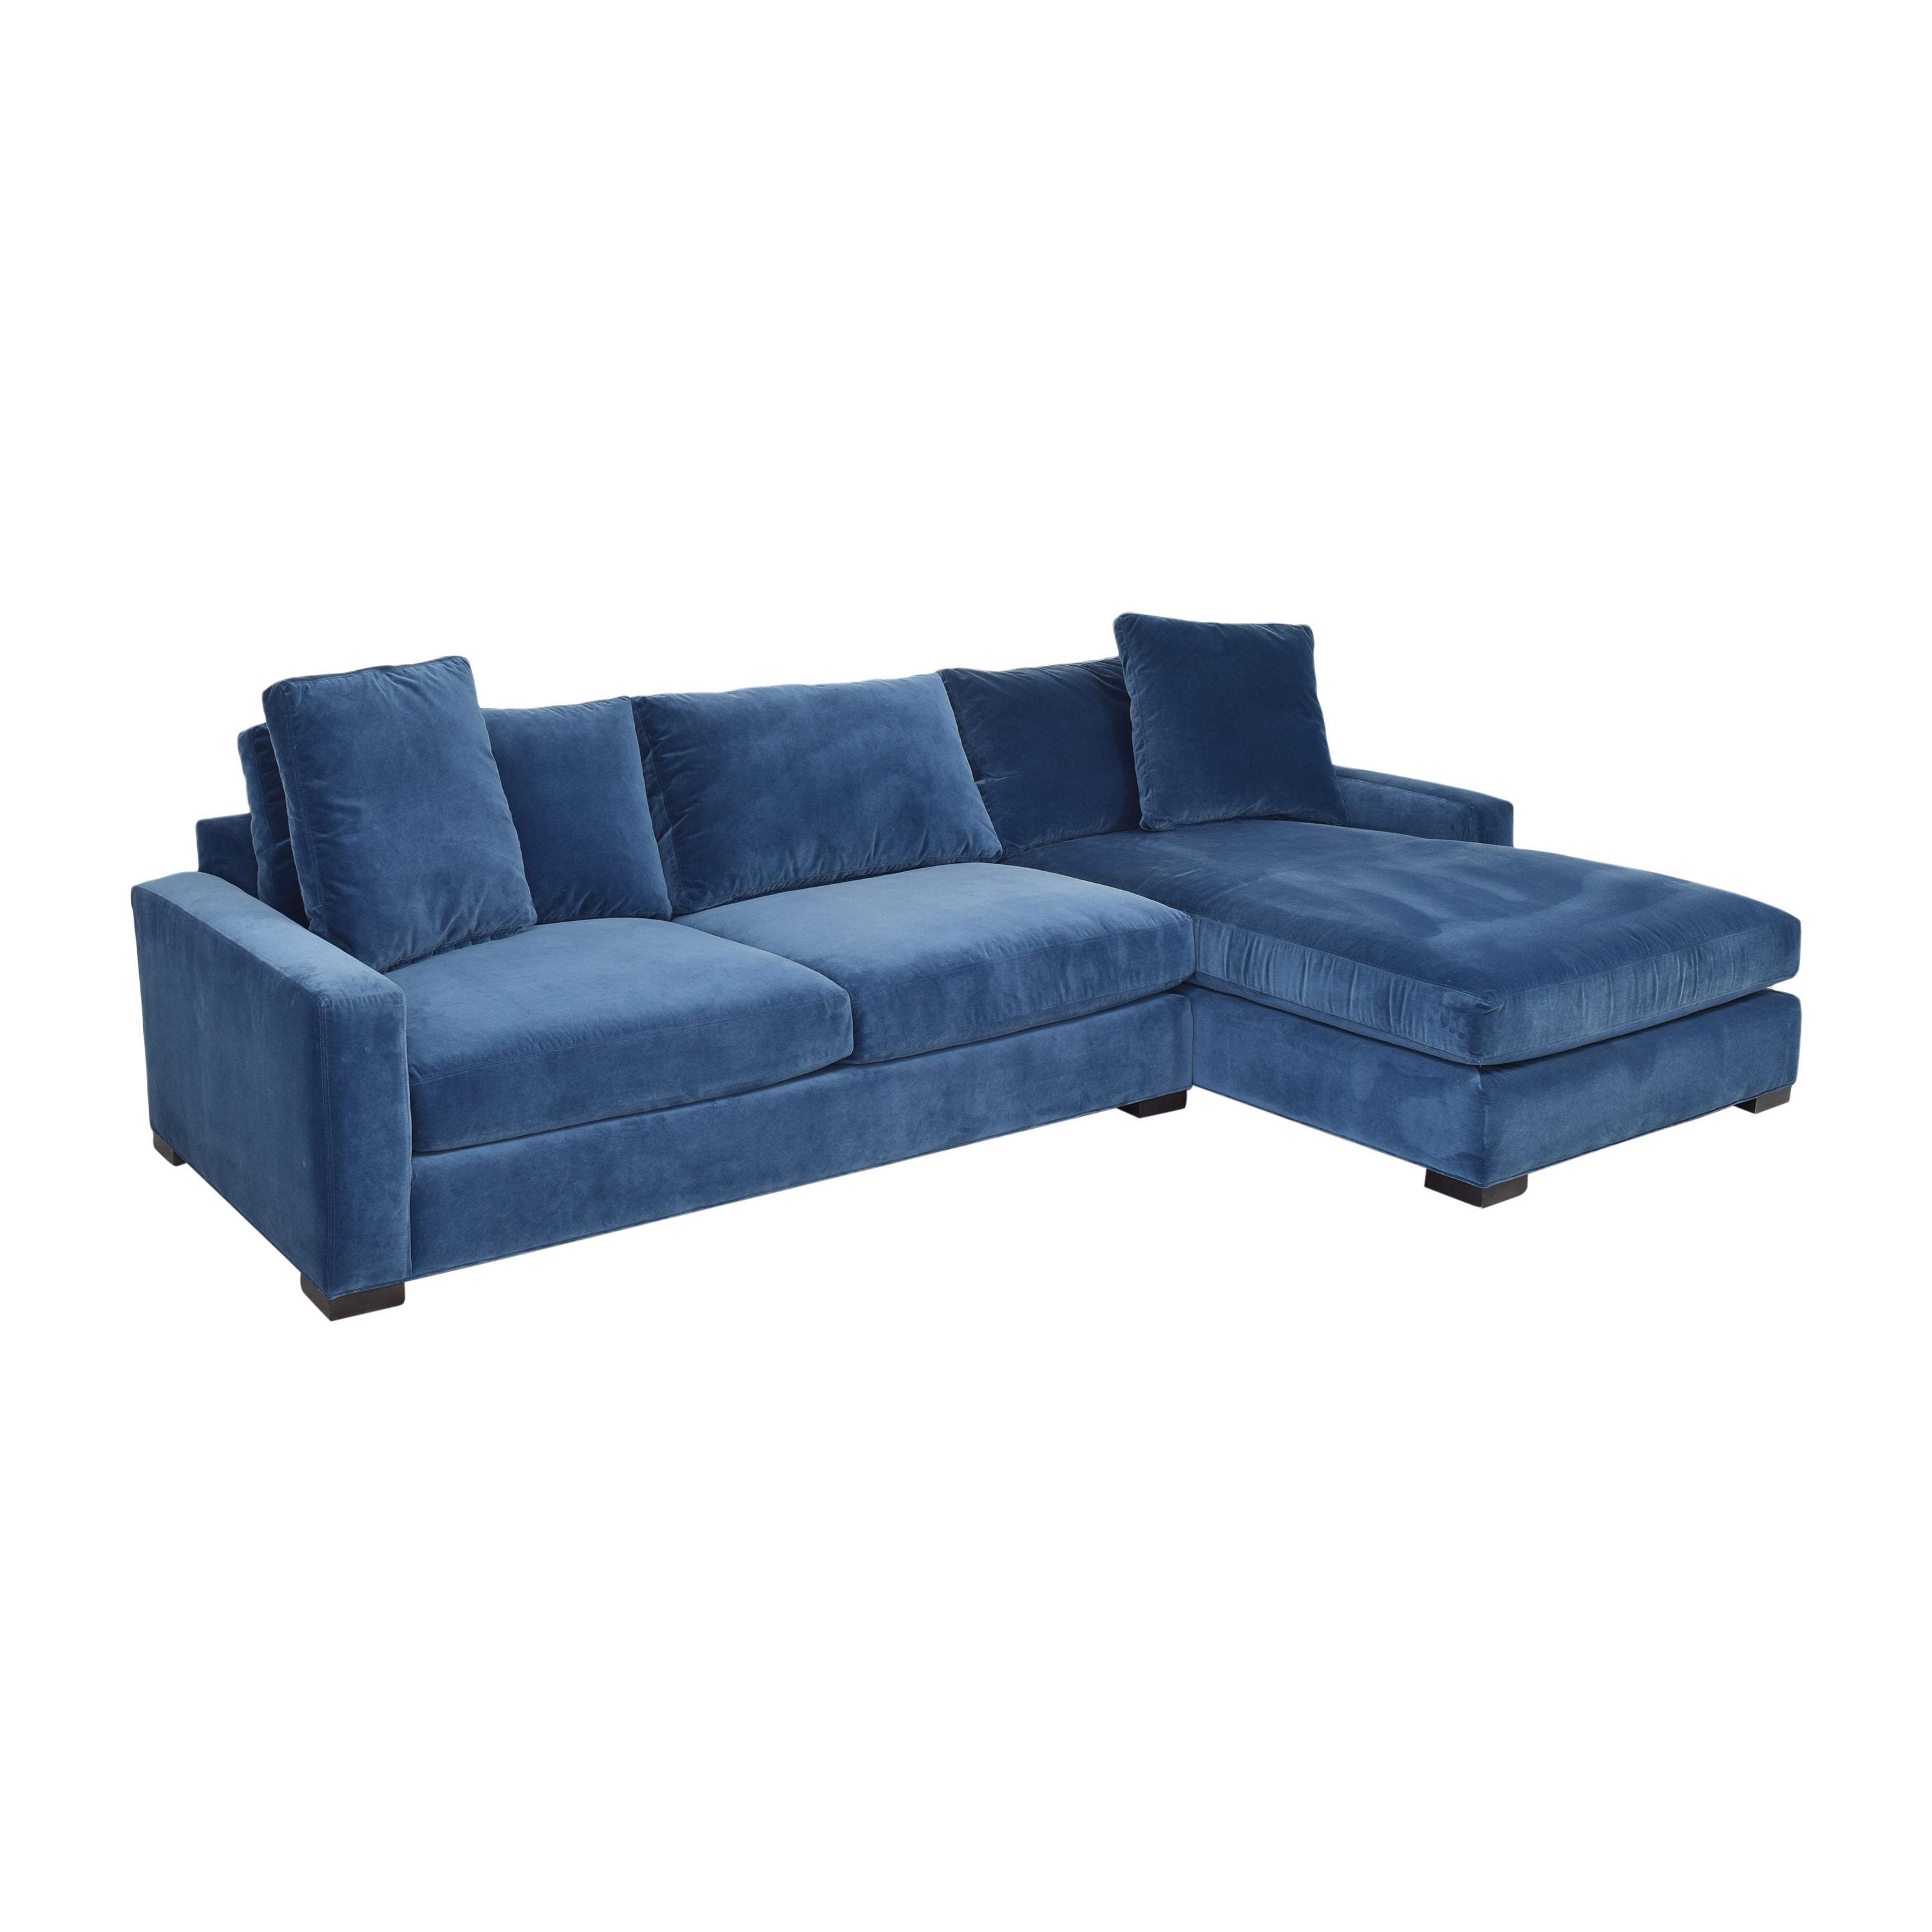 Room & Board Room & Board Metro Sectional Sofa with Chaise for sale